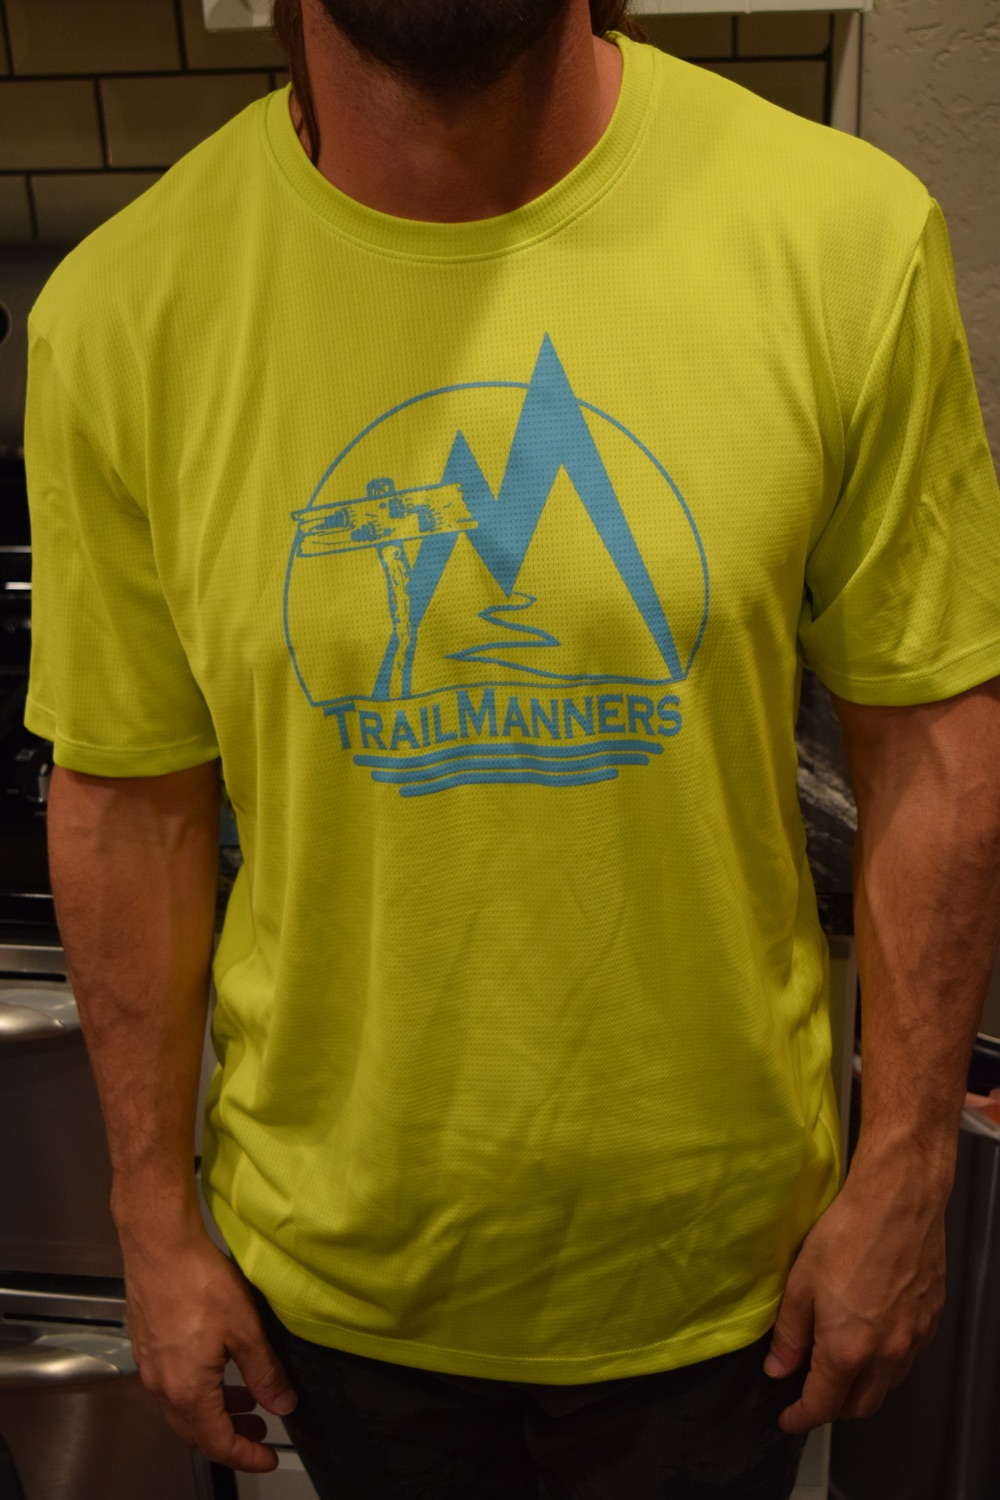 caa12a54 ASICS Short Sleeve Tech T-Shirt - TrailManners